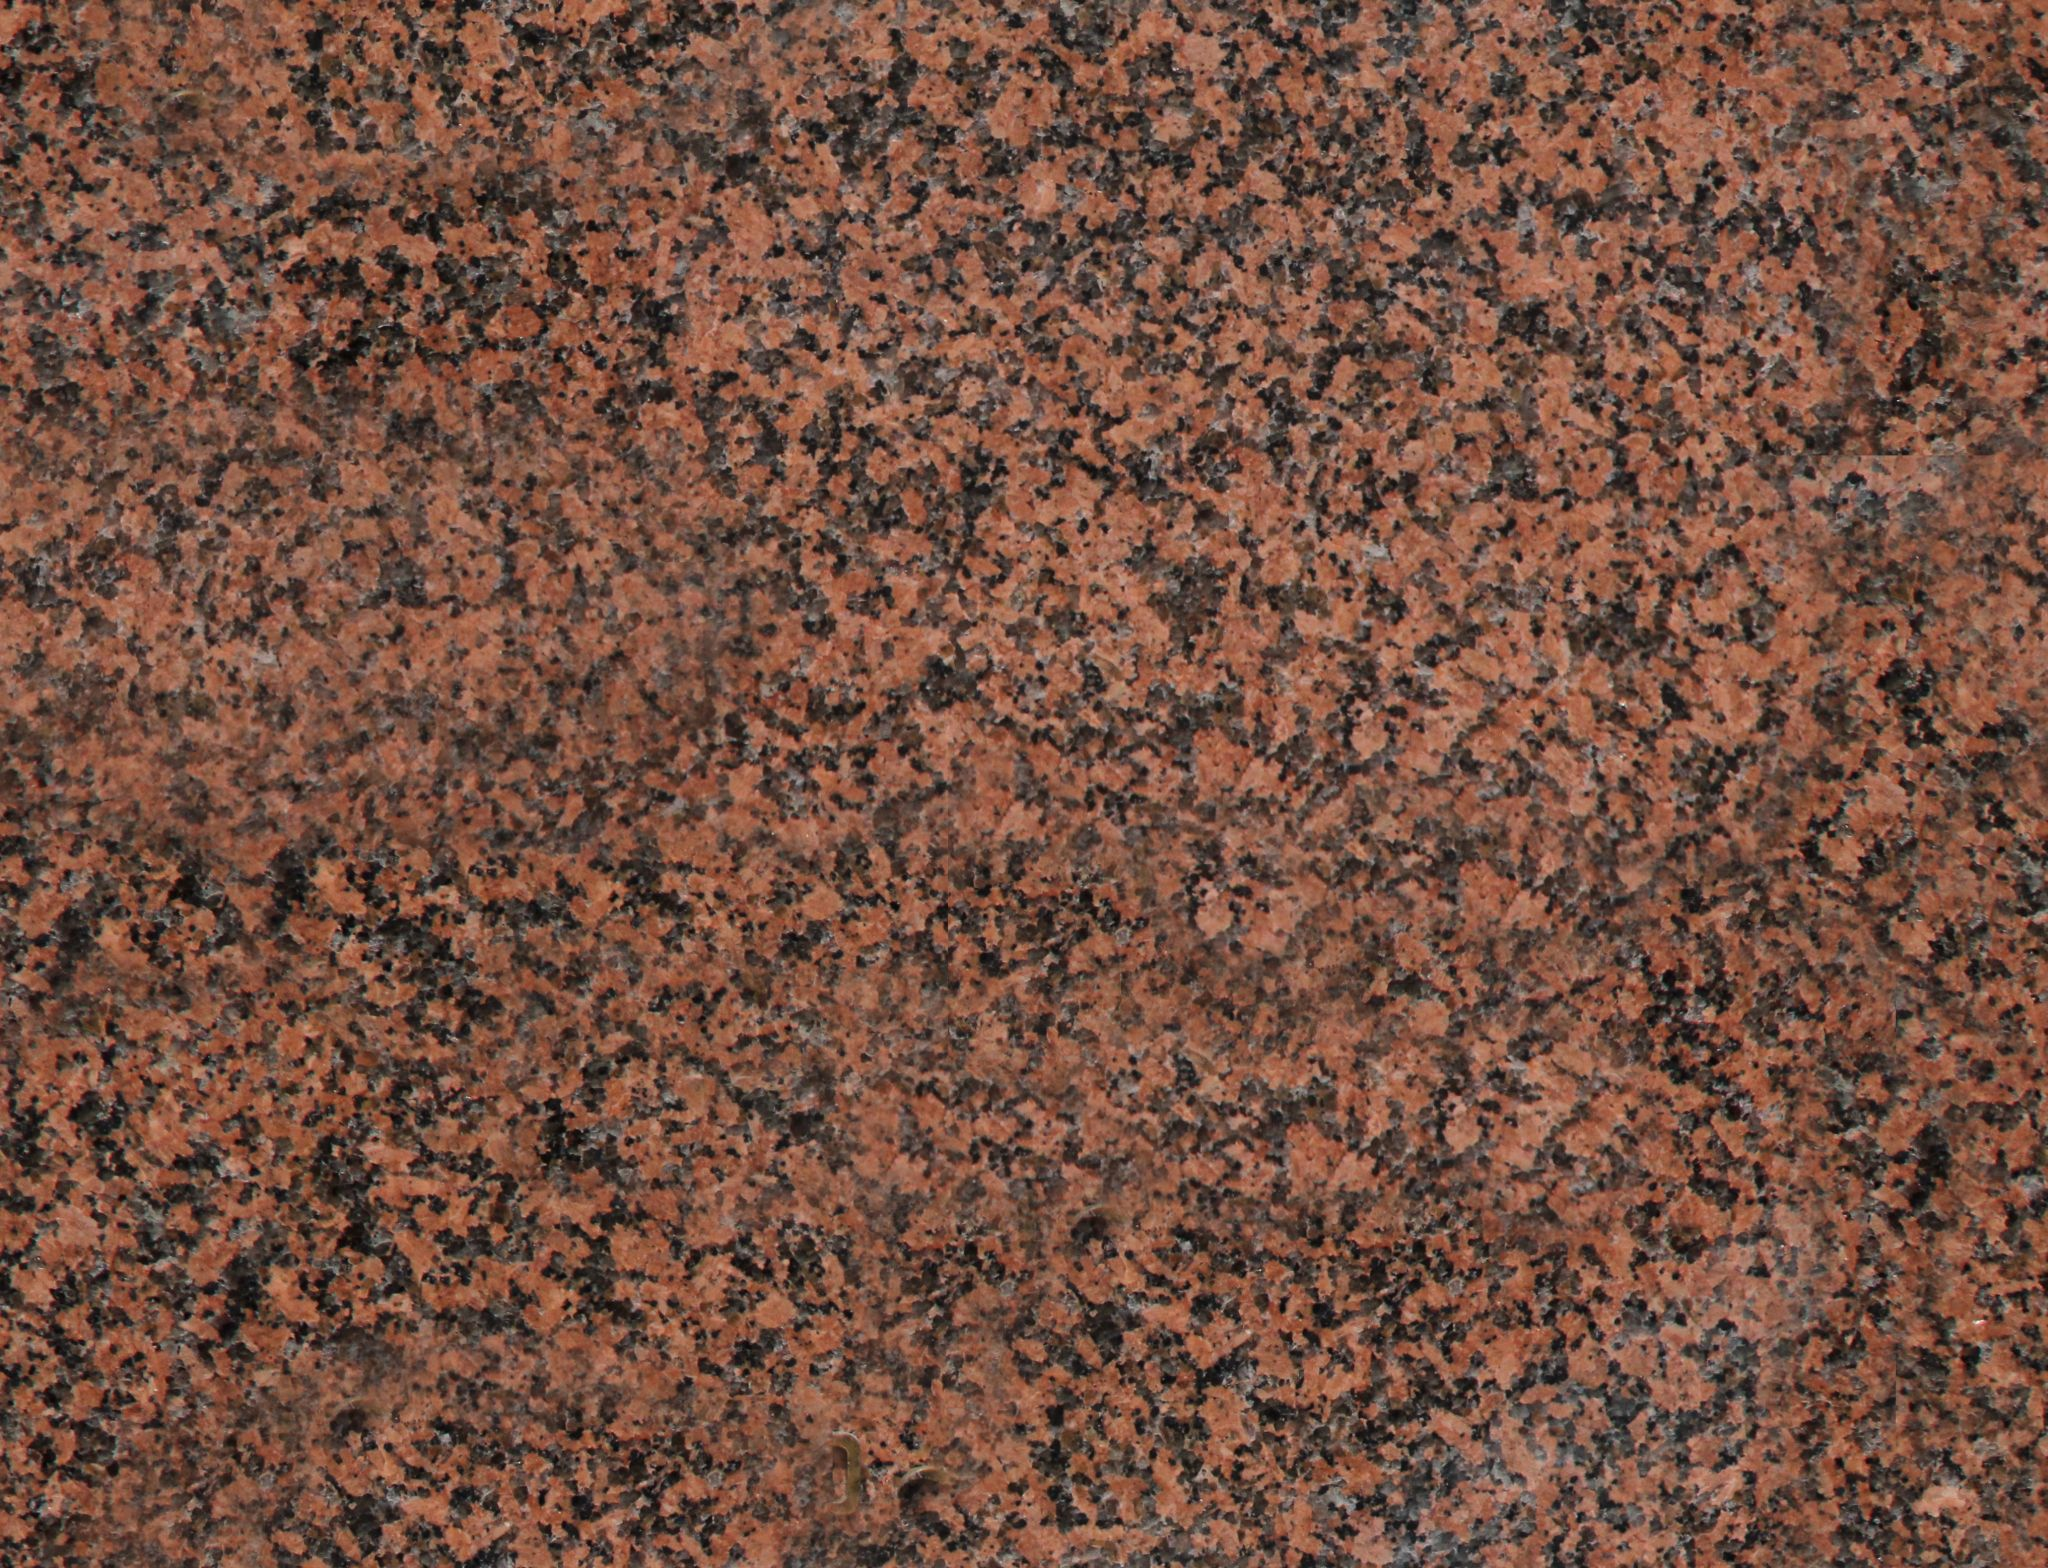 Red And Black Granite : Granite texture red and black seamless with